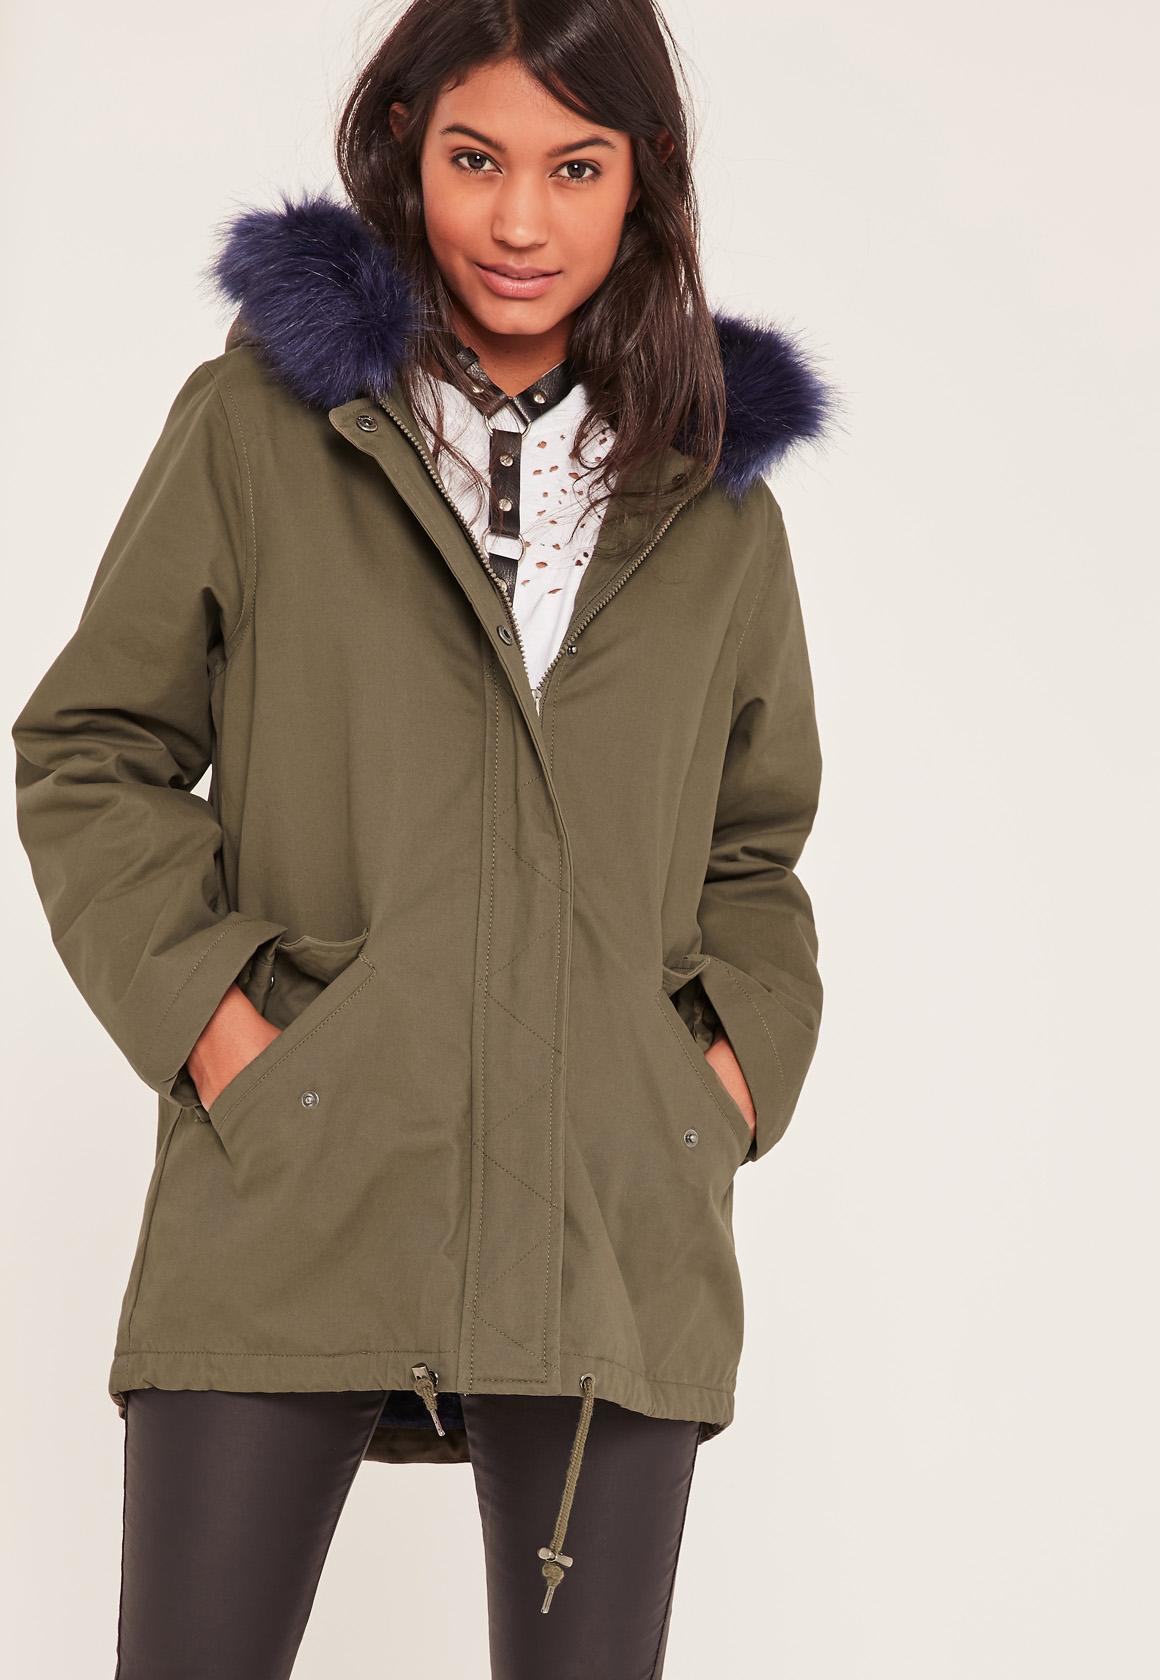 Khaki Faux Fur Lined Parka Coat | Missguided Ireland